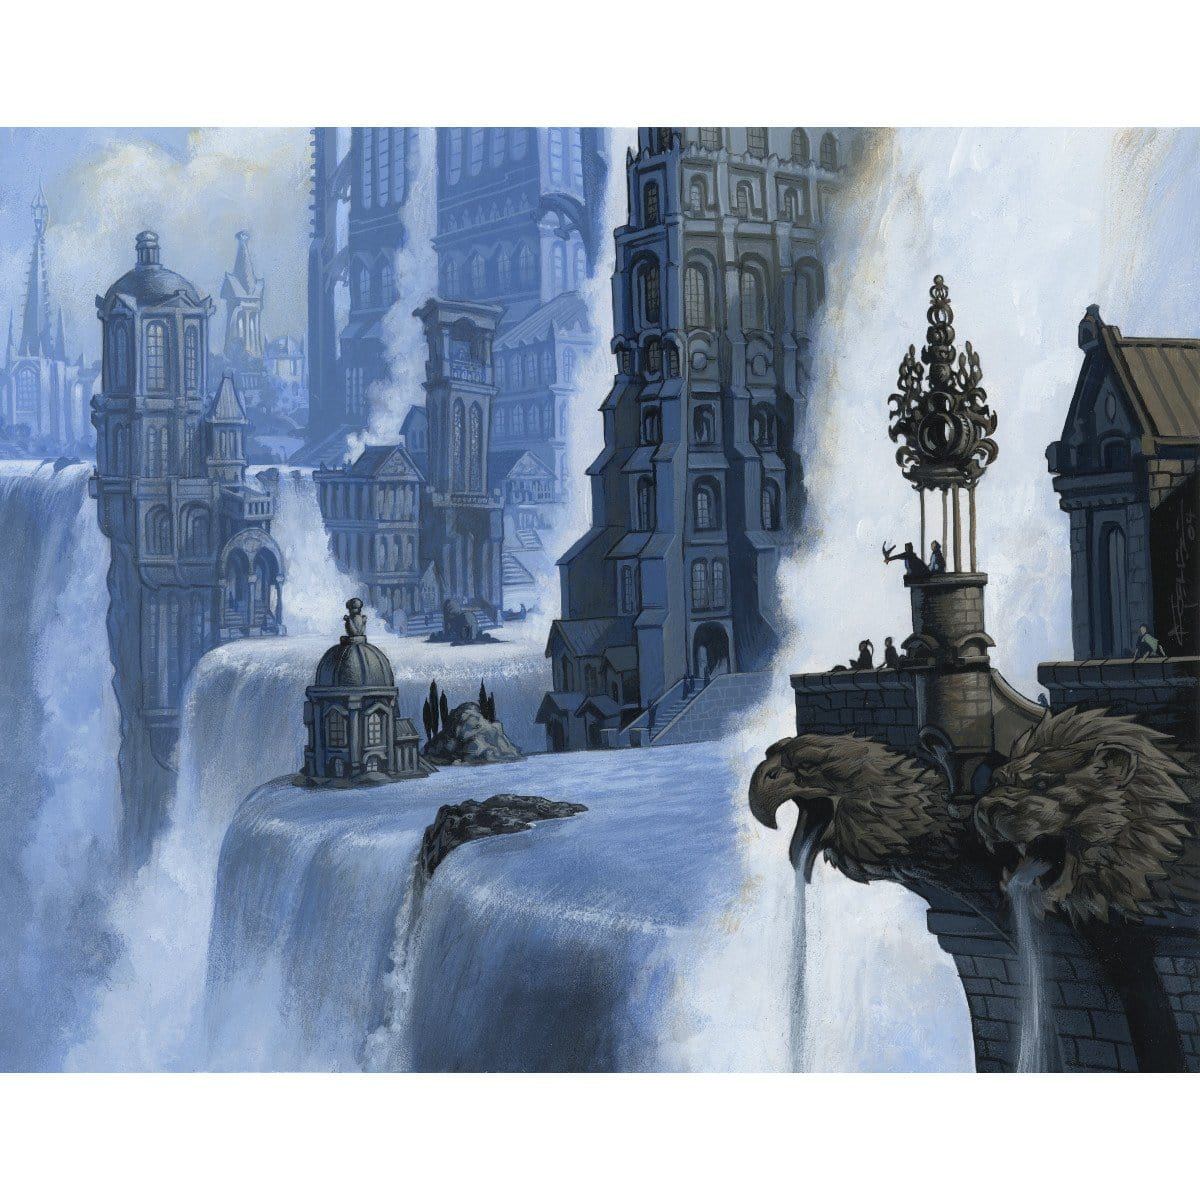 Island (Ravnica) Print - Print - Original Magic Art - Accessories for Magic the Gathering and other card games